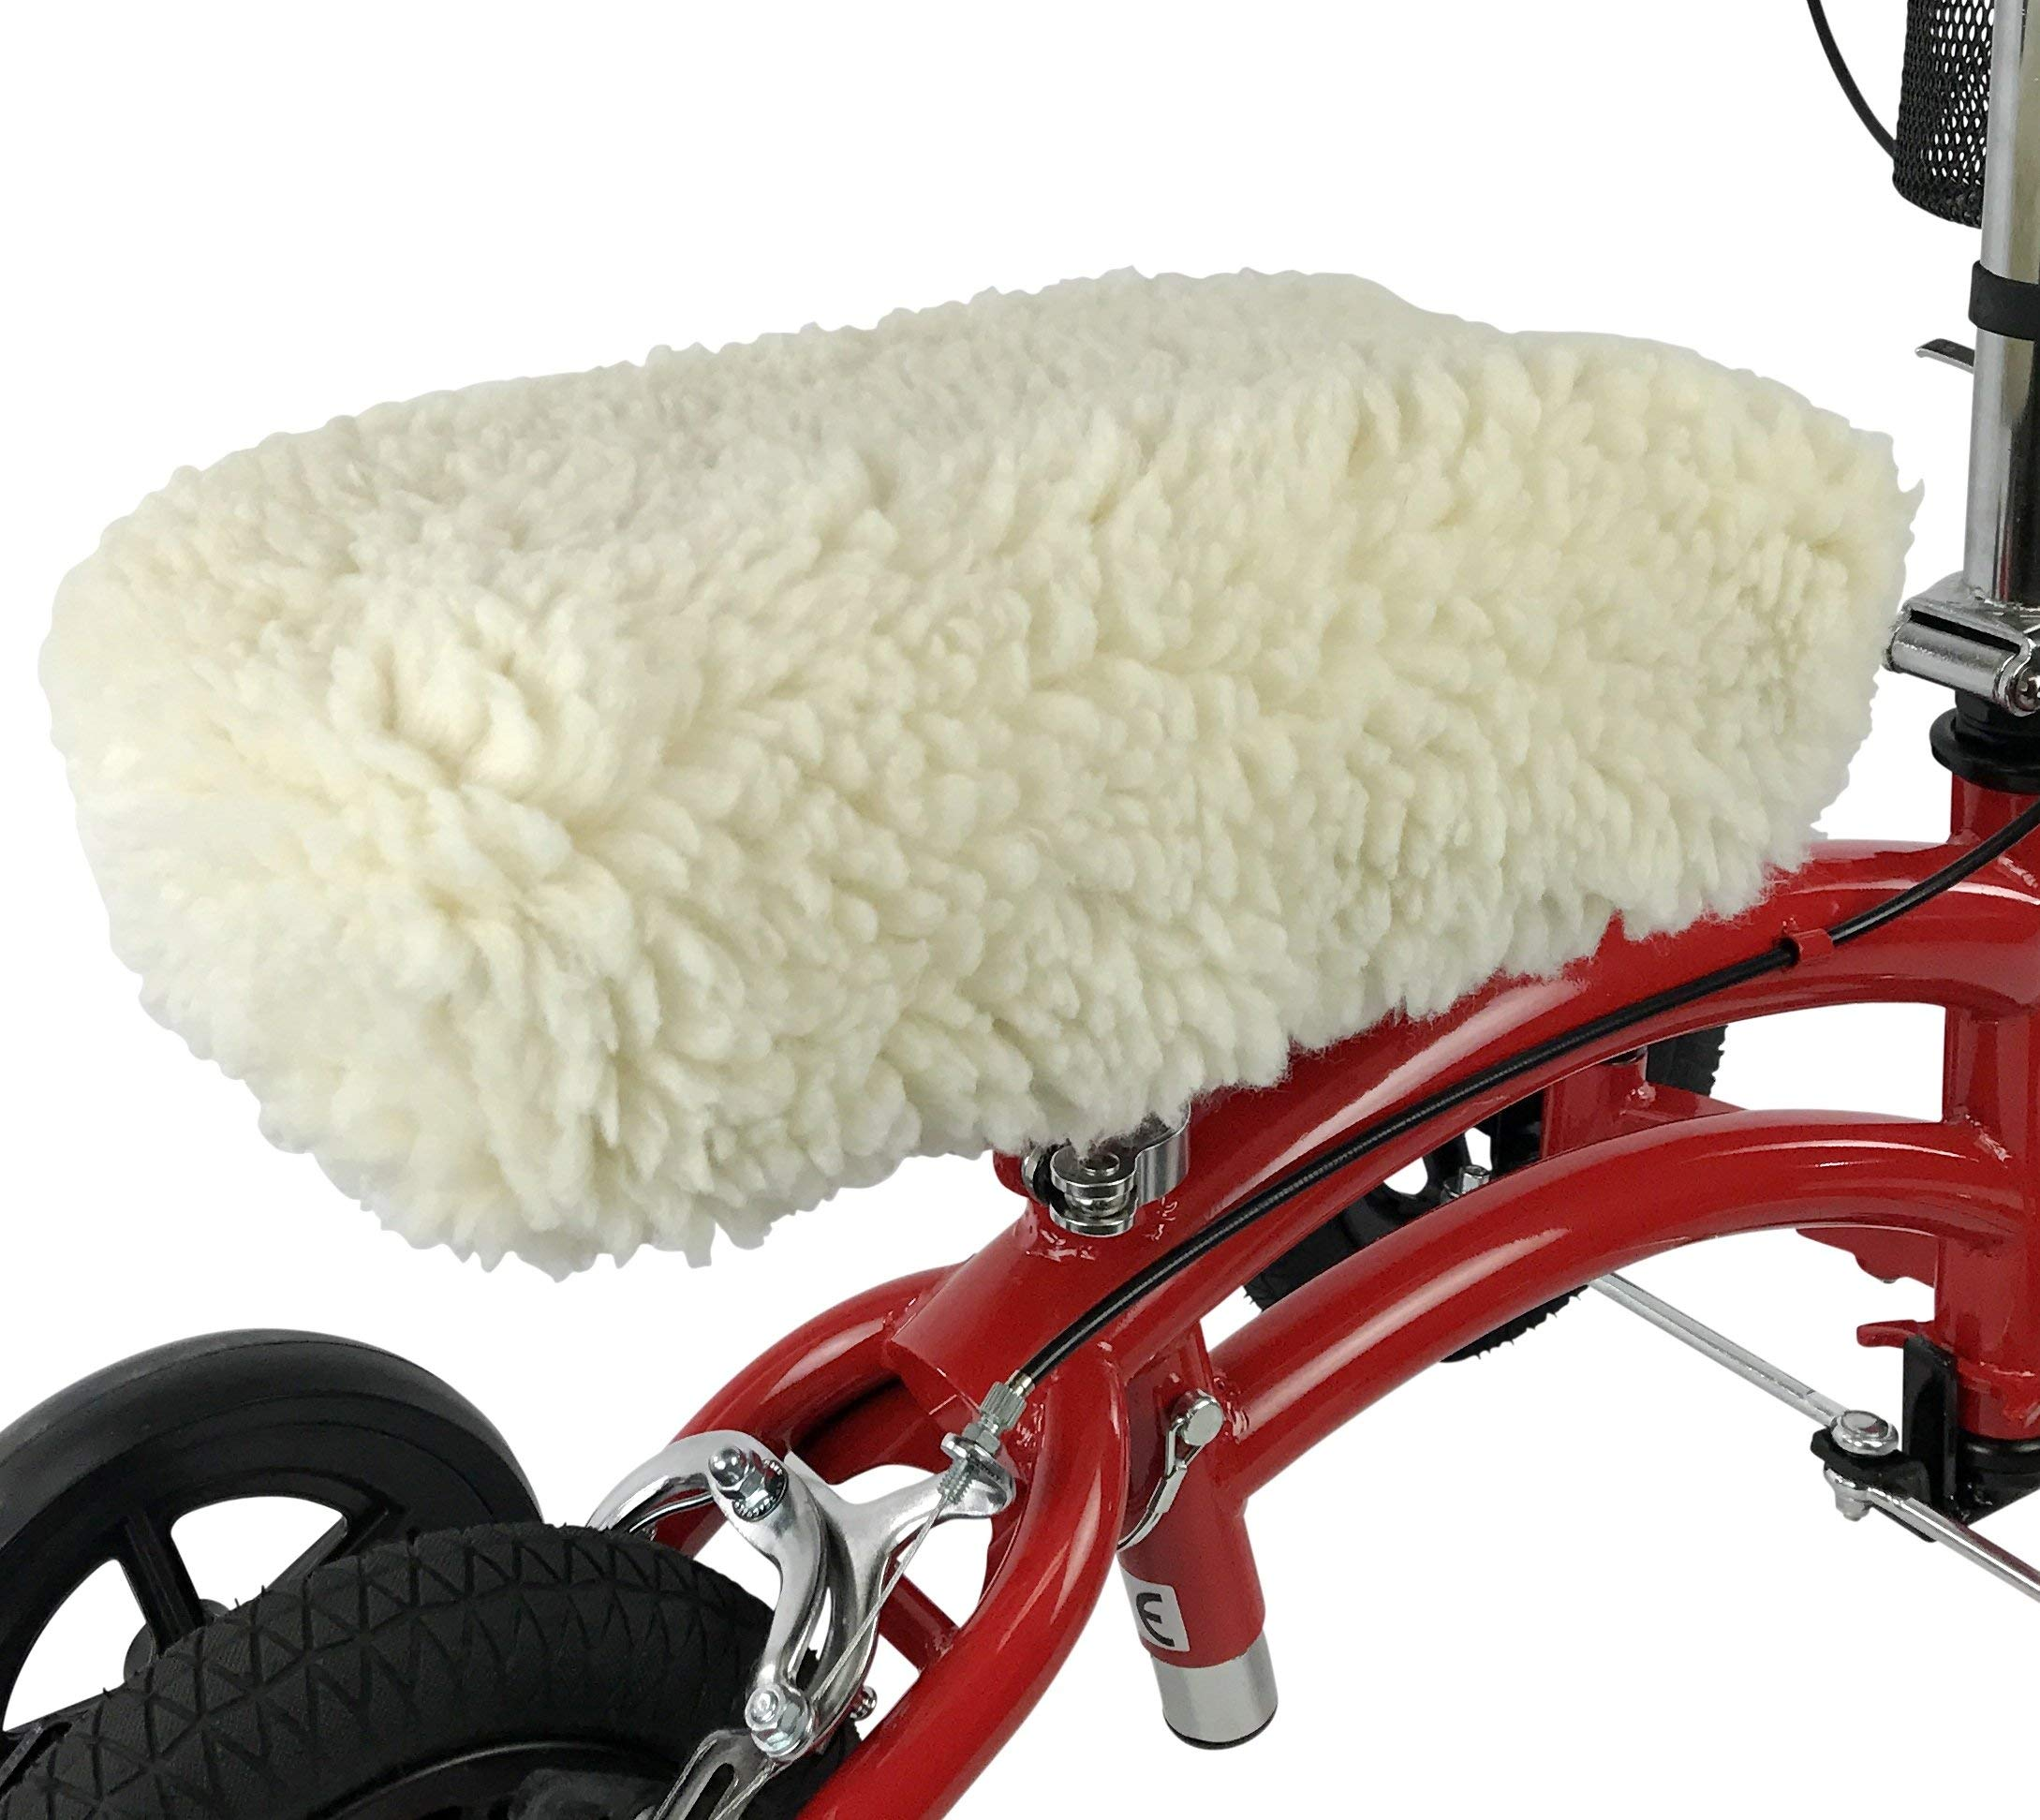 KneeRover Universal Knee Walker Knee Rest Pad Cover - Plush Synthetic Sheepskin Pad for Rolling Scooter by KneeRover